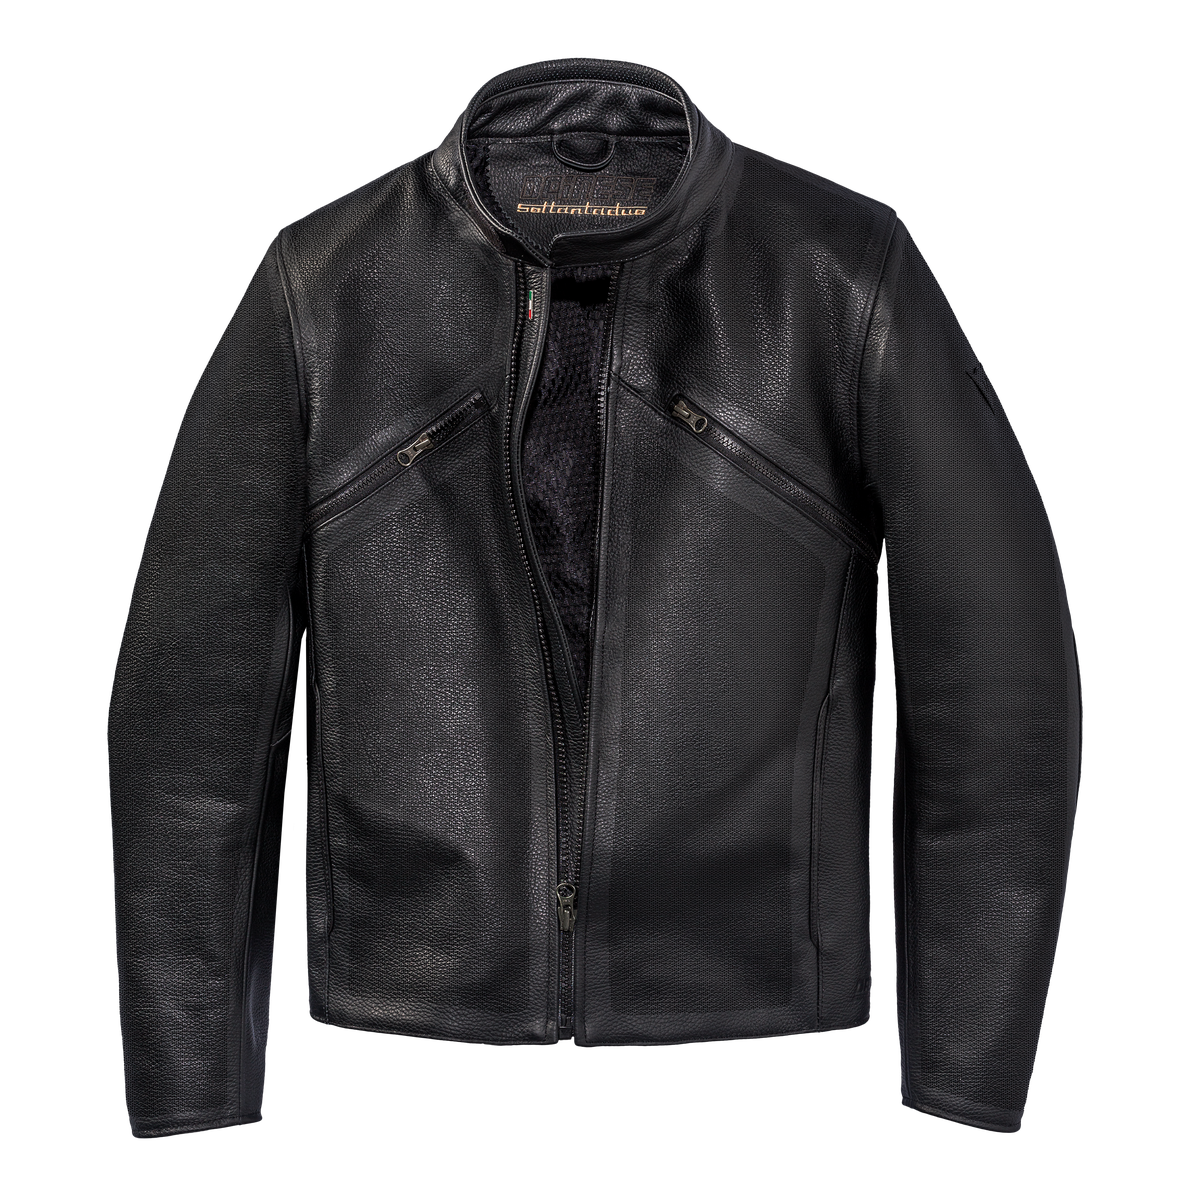 91a998b0f PRIMA72 PERF. LEATHER JACKET